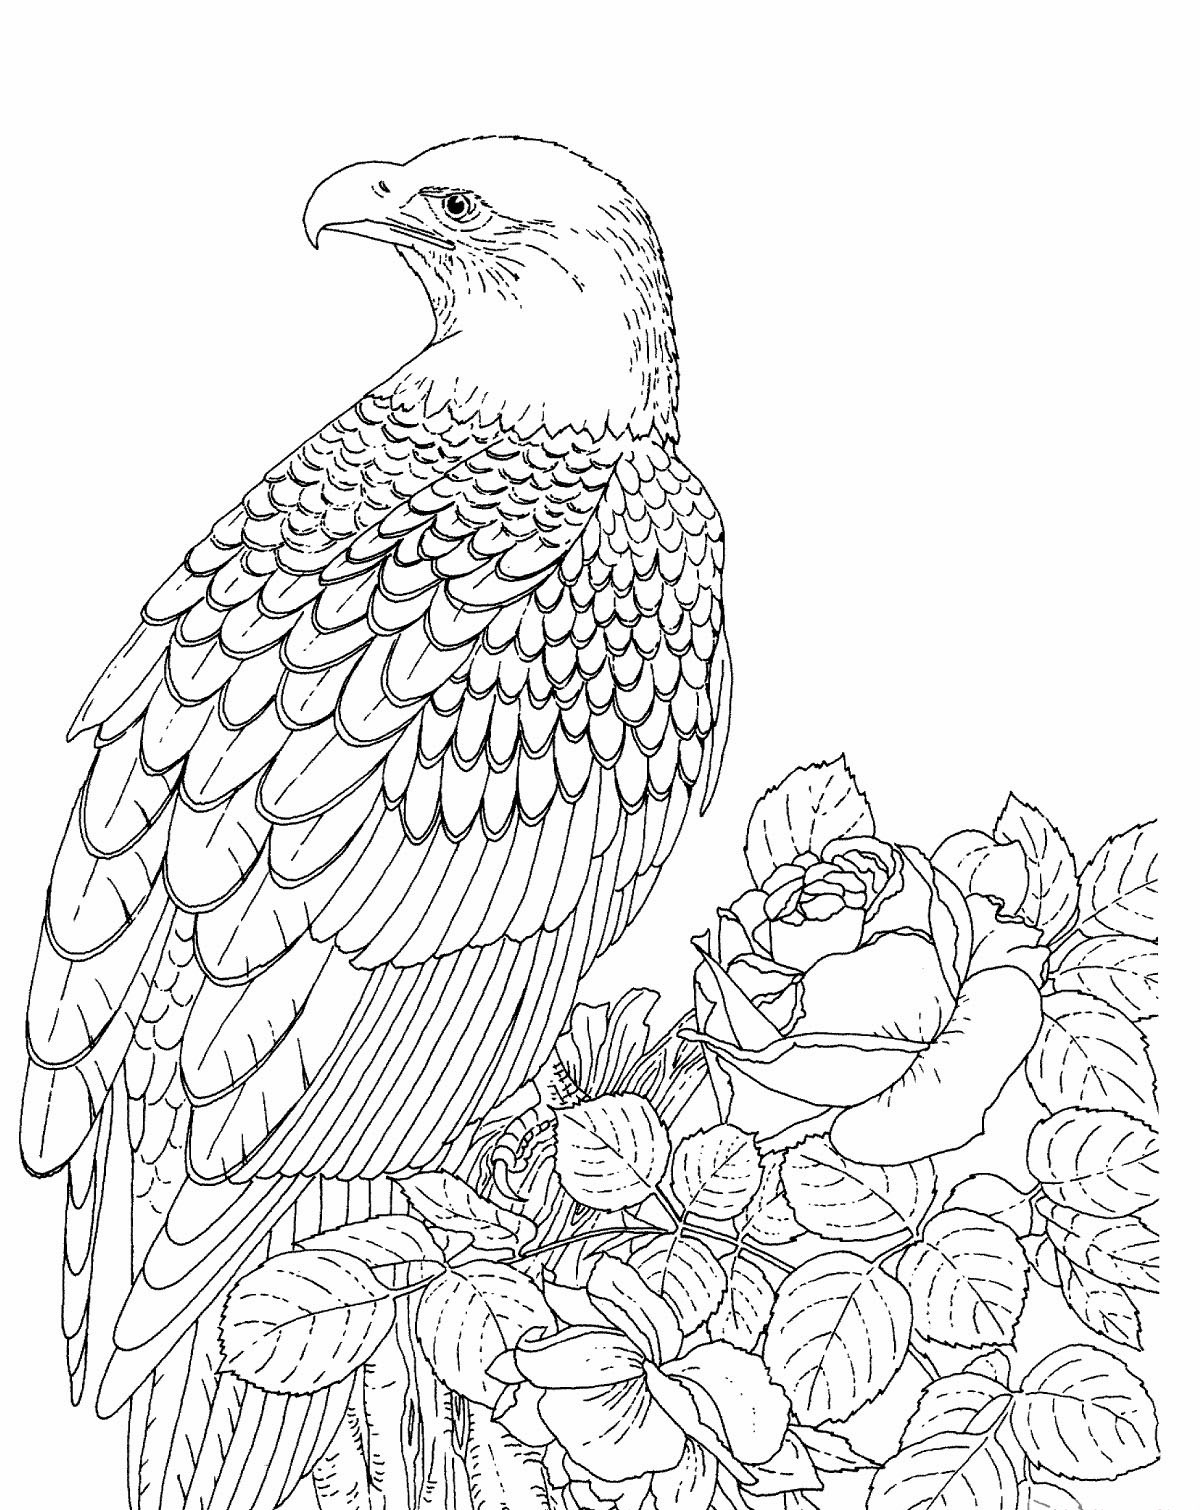 free printable pictures of eagles eagle coloring pages free printable black and white pictures eagles pictures printable free of